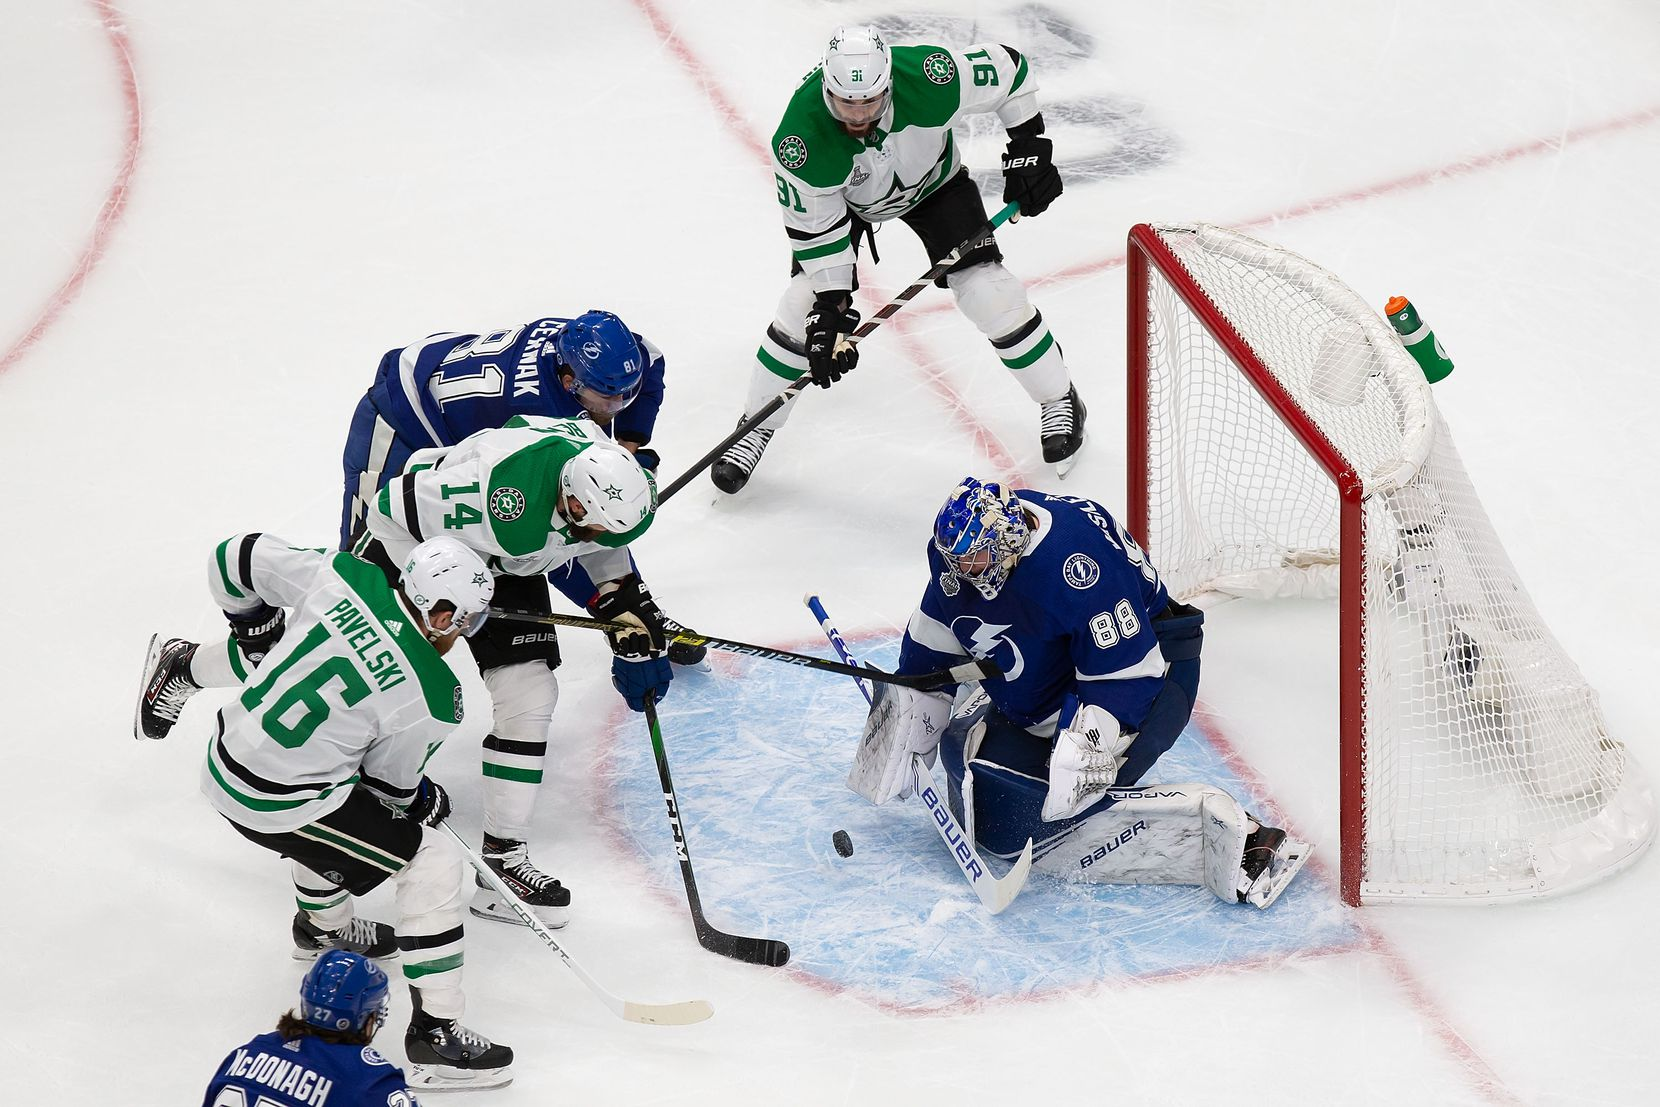 Jamie Benn (14) of the Dallas Stars takes a shot against goaltender Andrei Vasilevskiy (88) of the Tampa Bay Lightning during Game Two of the Stanley Cup Final at Rogers Place in Edmonton, Alberta, Canada on Monday, September 21, 2020. (Codie McLachlan/Special Contributor)